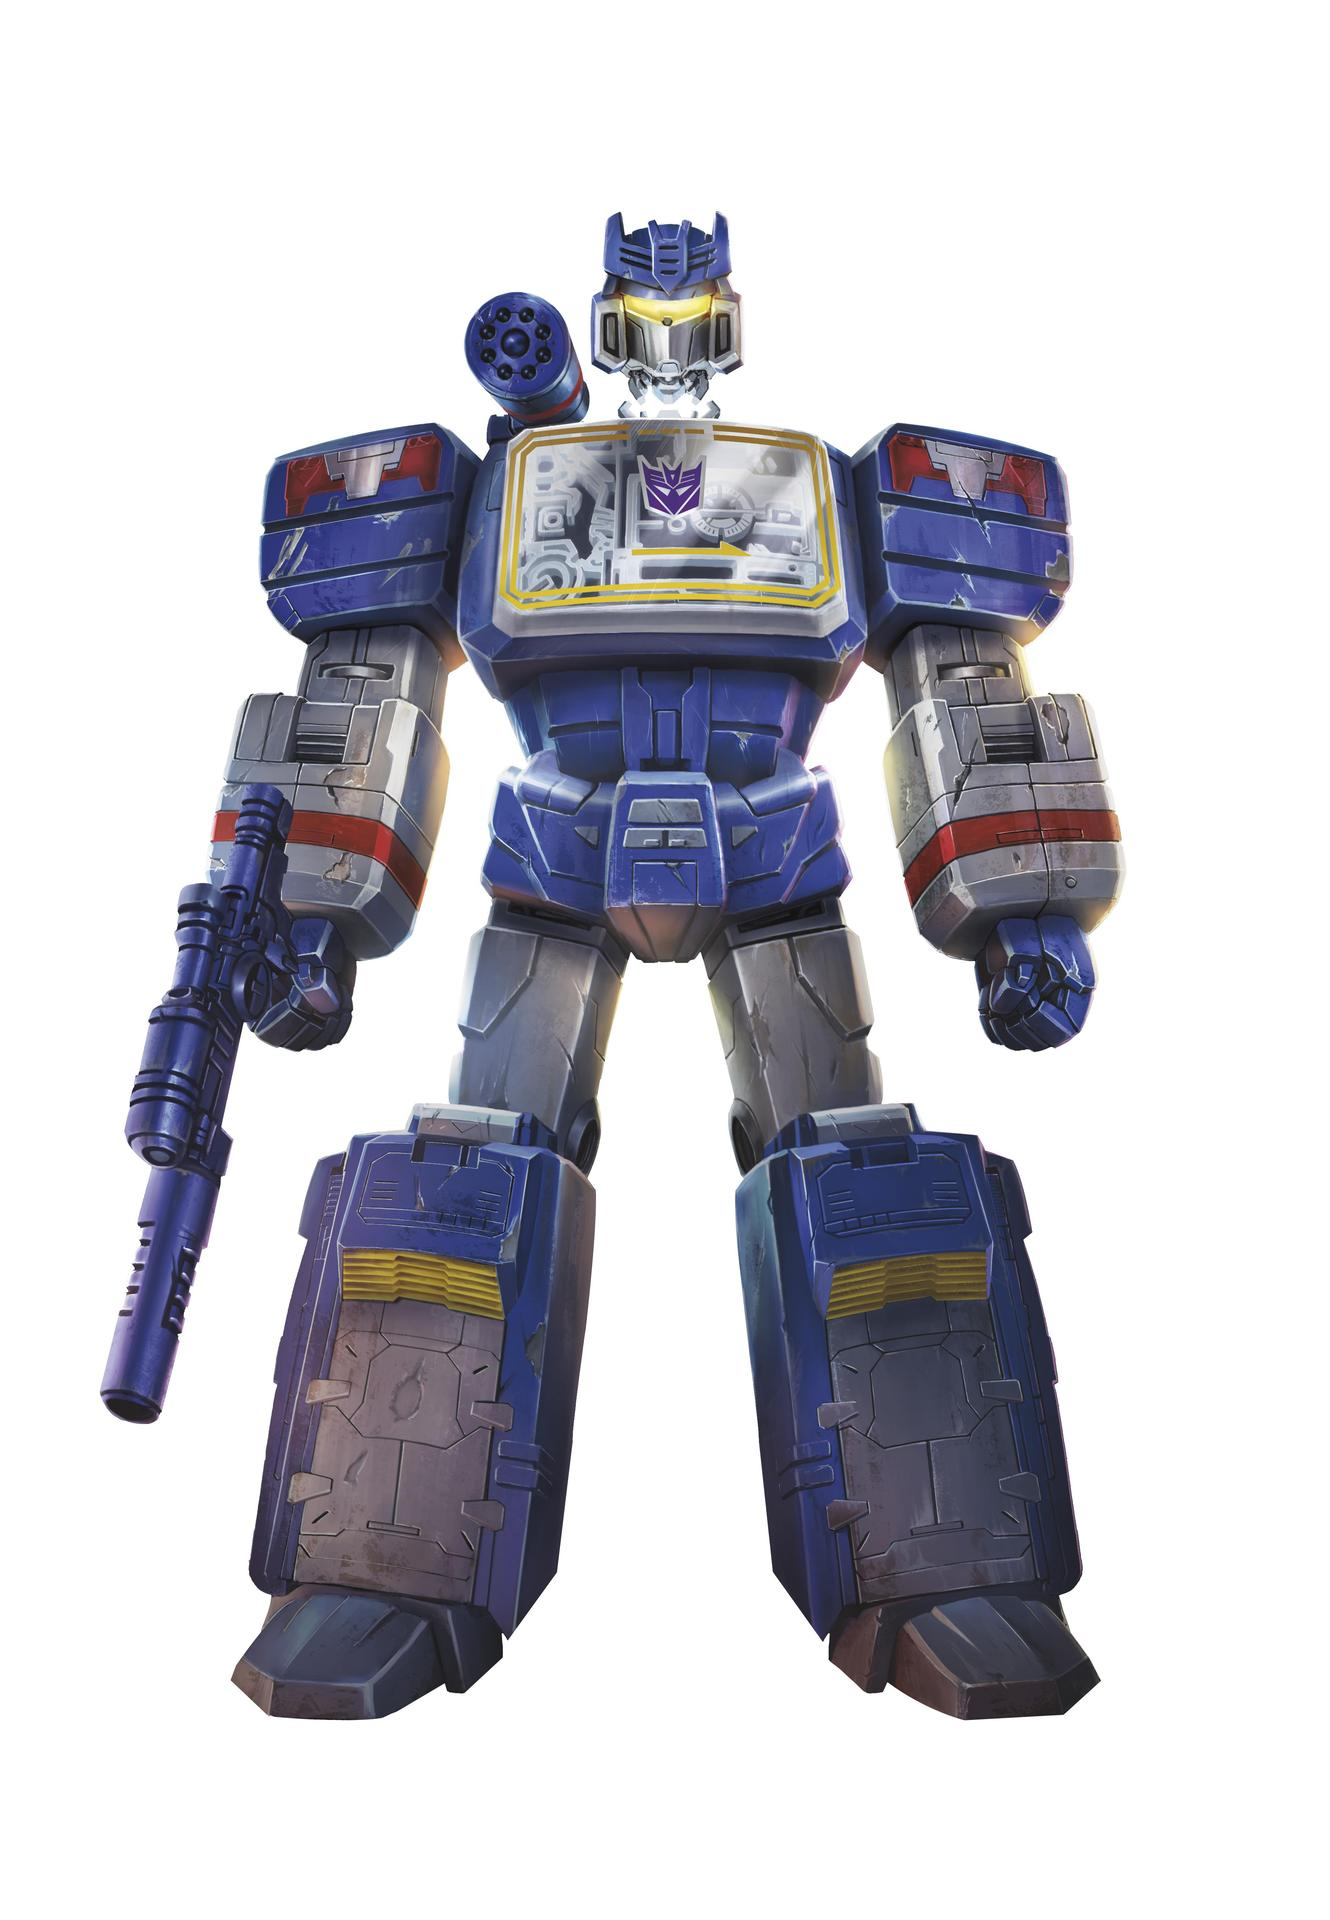 Titans Return Leader Class Soundwave Revealed-titans-soundwave-04.jpg